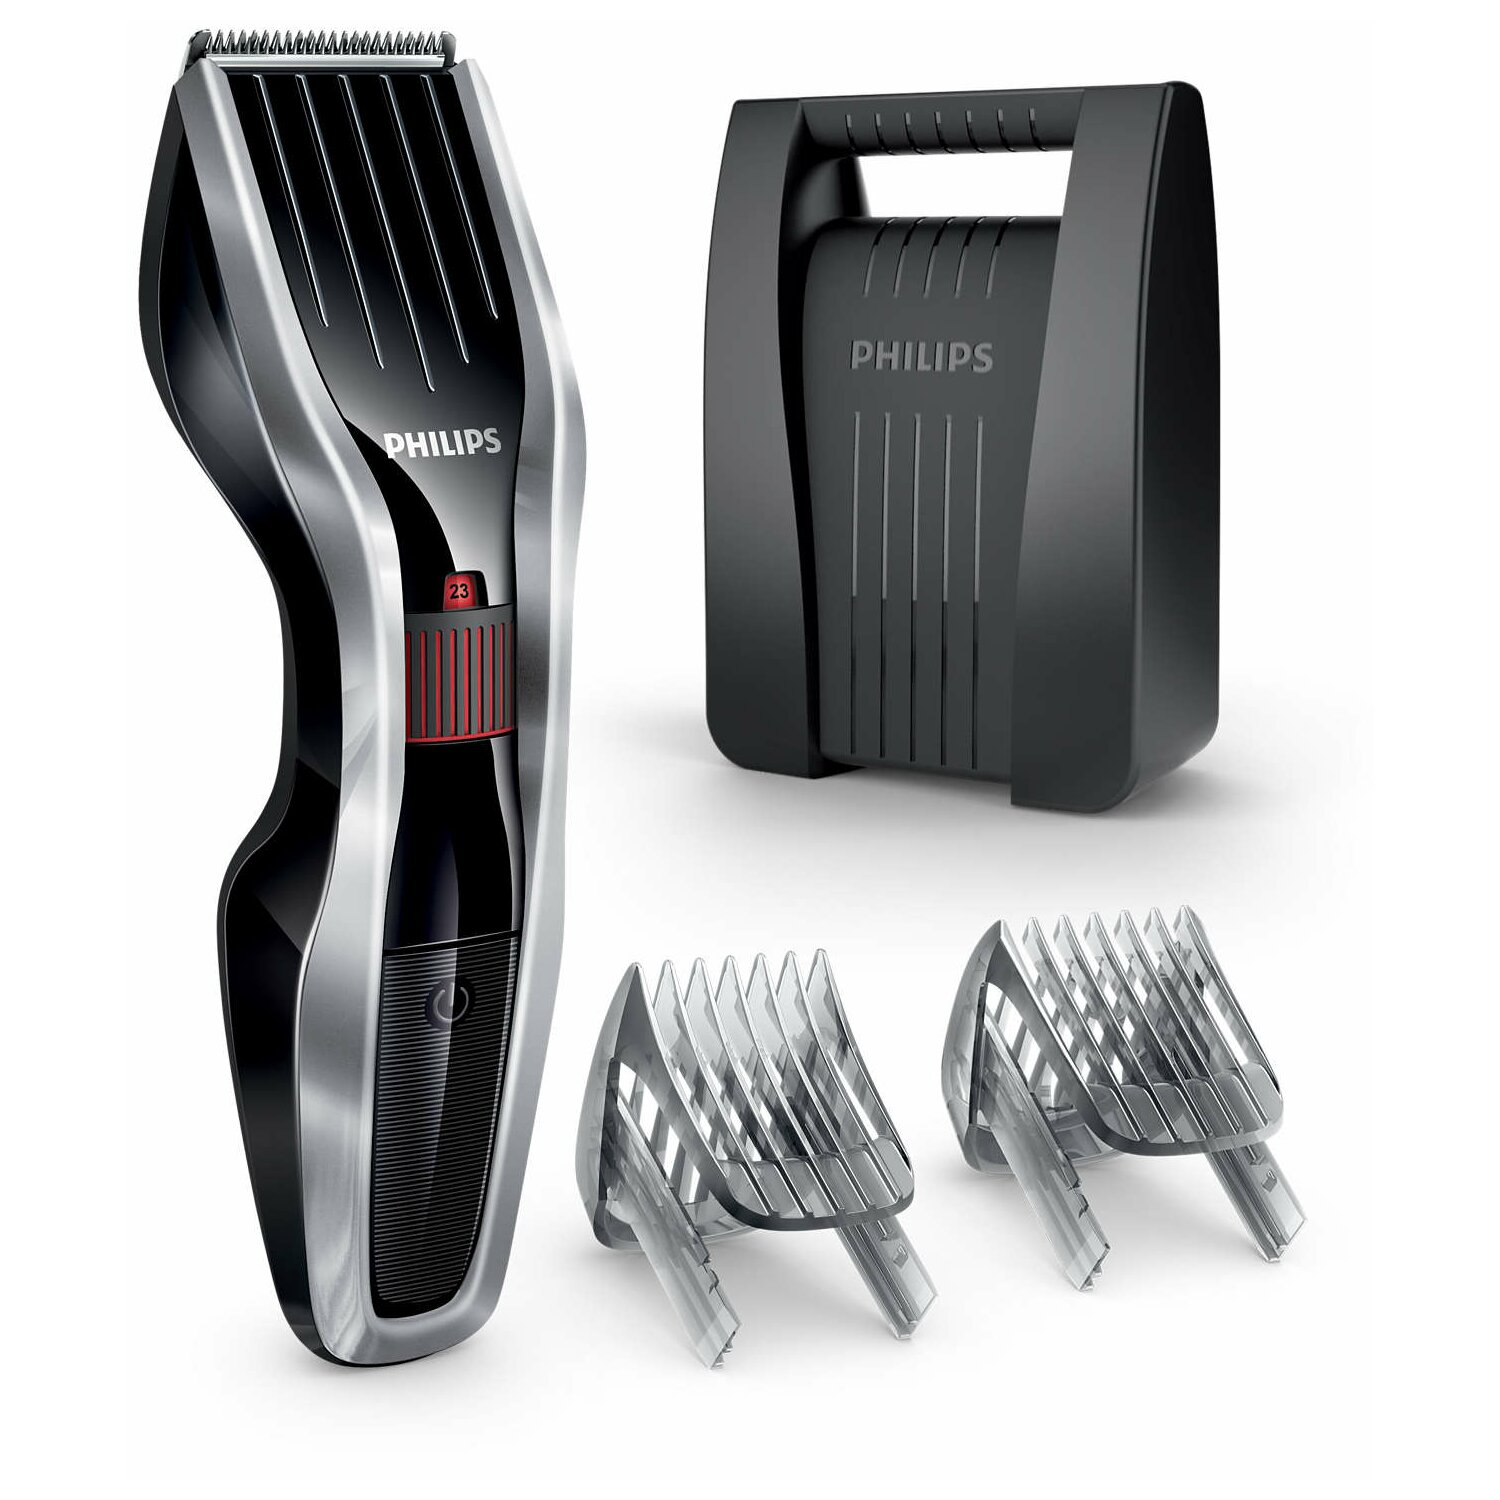 Strzyżarka PHILIPS Hairclipper Series 5000 HC5440/80